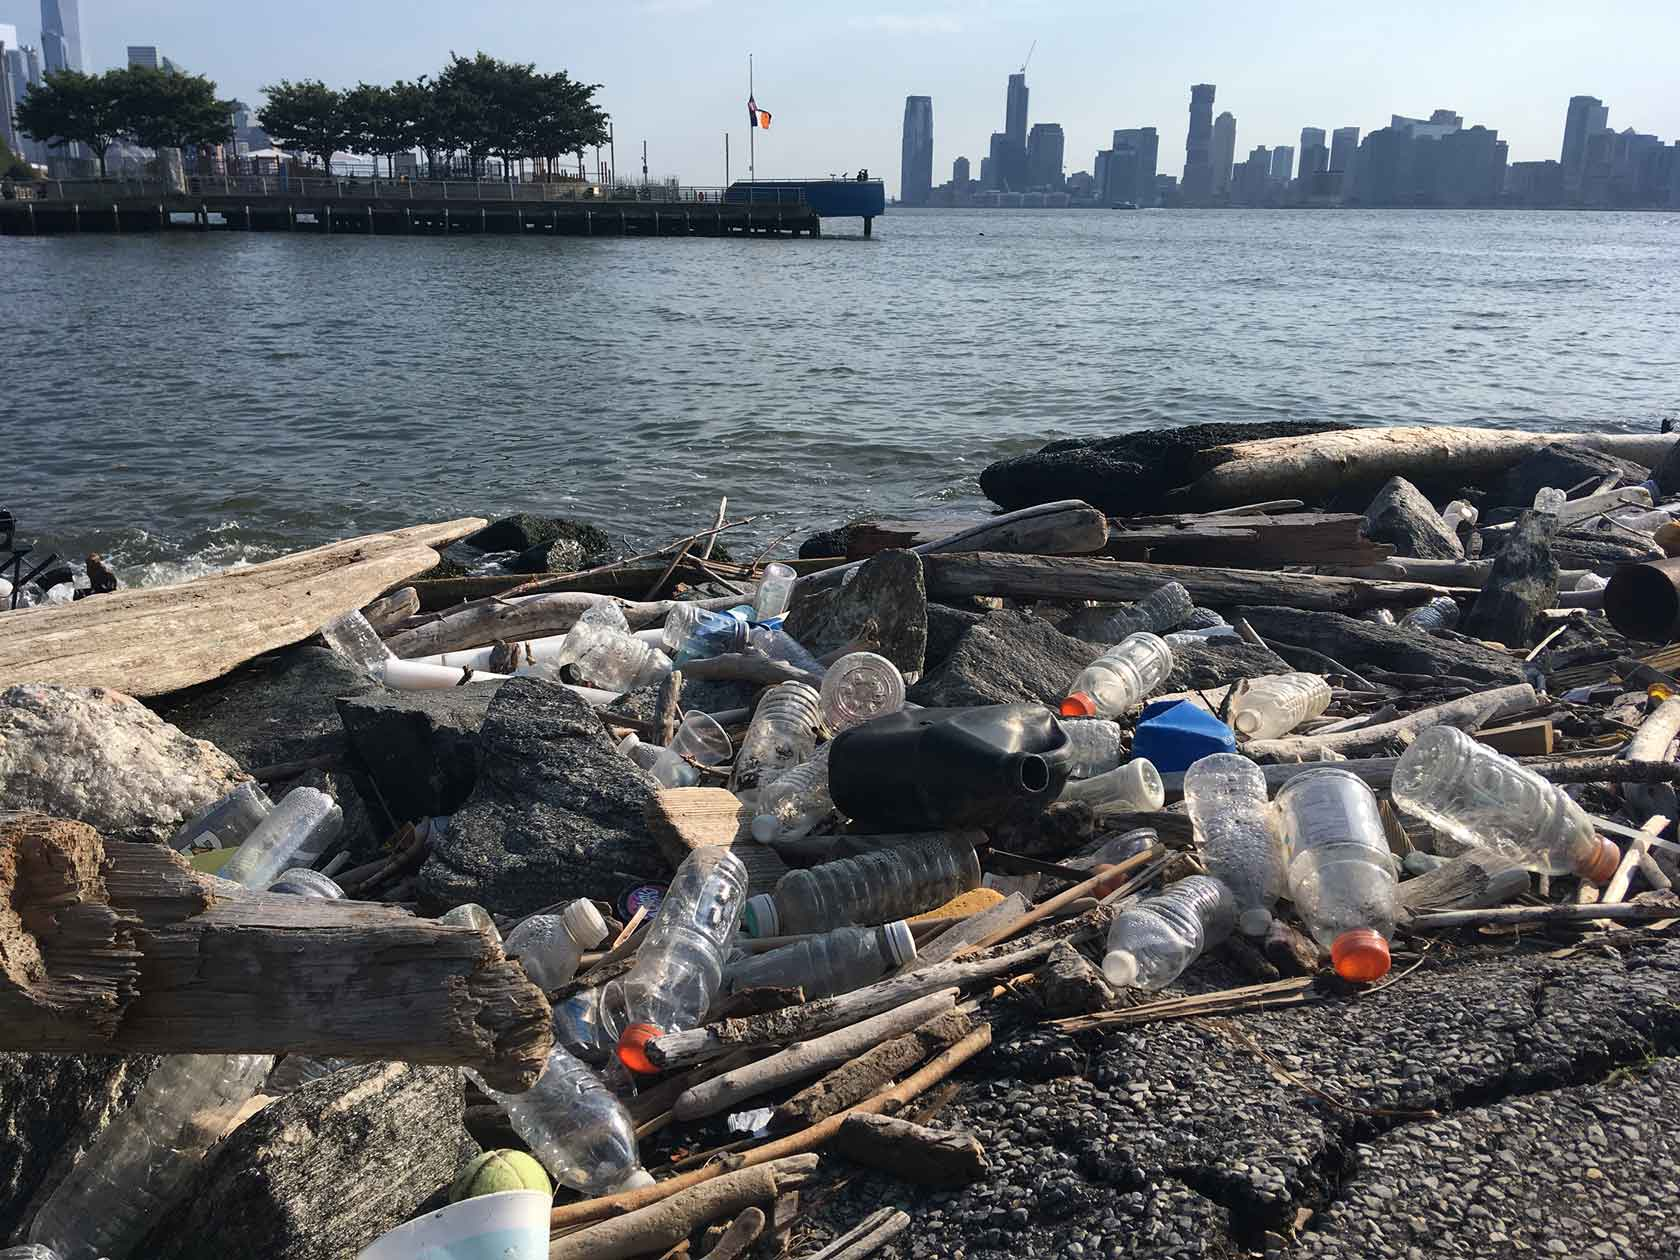 Plastic bottles and bags sit on the end of Gansevoort Peninsula